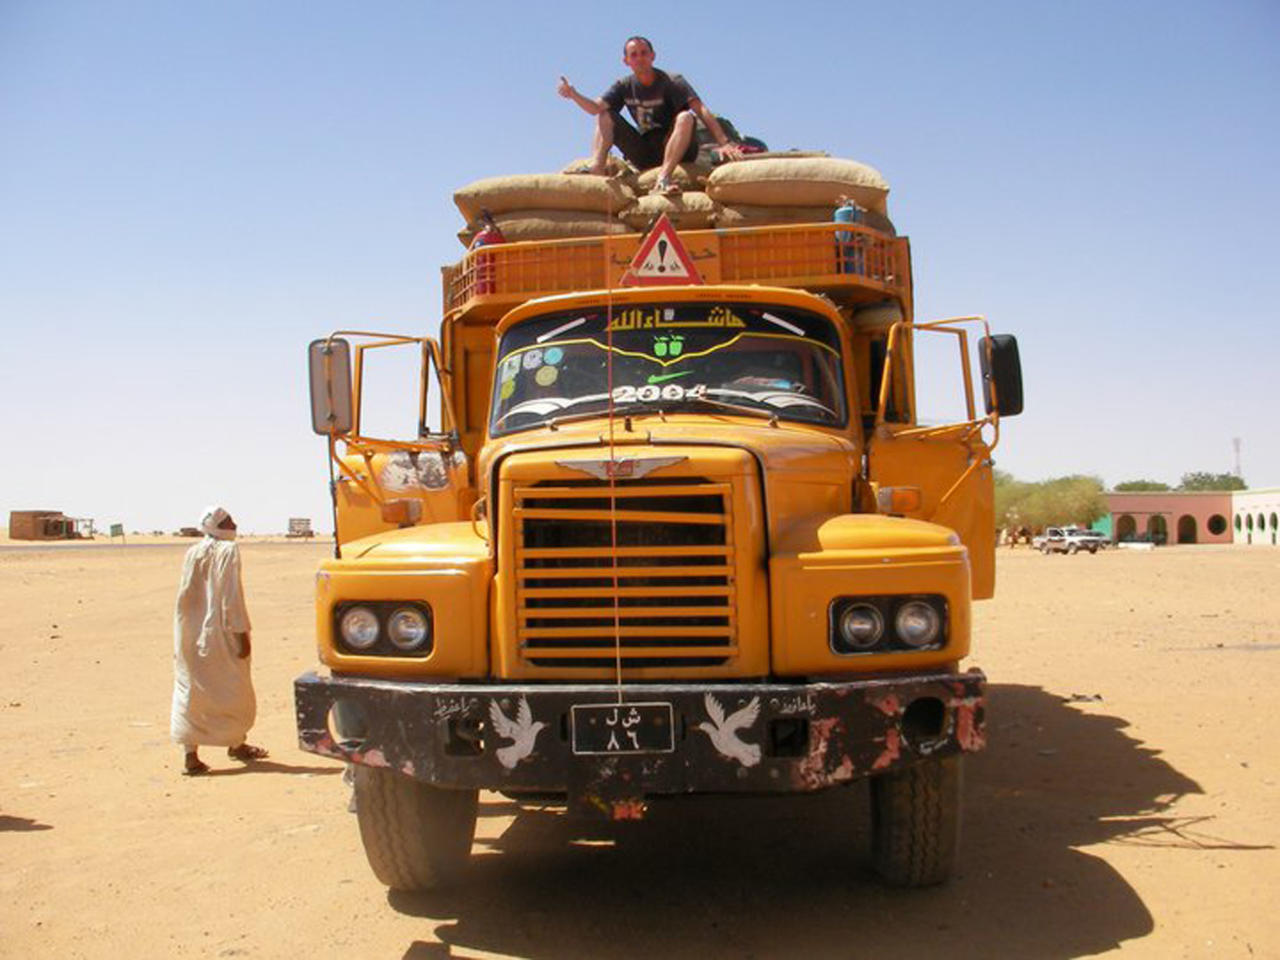 (PICTURED:A collect of Jeremy Marie hitching a lift on a truck as part of his world travels) A Frenchman has travelled over 100,000 miles around the world - by hitching a lift. From trekking in 50C heat through the deserts of Sudan to braving temperatures of -20C.. while thumbing a lift in Kazakhstan, Jeremy Marie has visited over 71 countries in the last five years. The 29-year-old globetrotter has hitched lifts with cars, boats, planes and even a donkey since he set off from Caen, Normandy in October 2007. Remarkably despite his 180,000km trip, Jeremy has not paid a penny towards his transport and instead relied on the generosity of strangers to give him a free ride. During his trip he hitchiked and sofa surfed his way across Europe, USA, South America, Africa, Australia, New Zealand and plenty more in between.